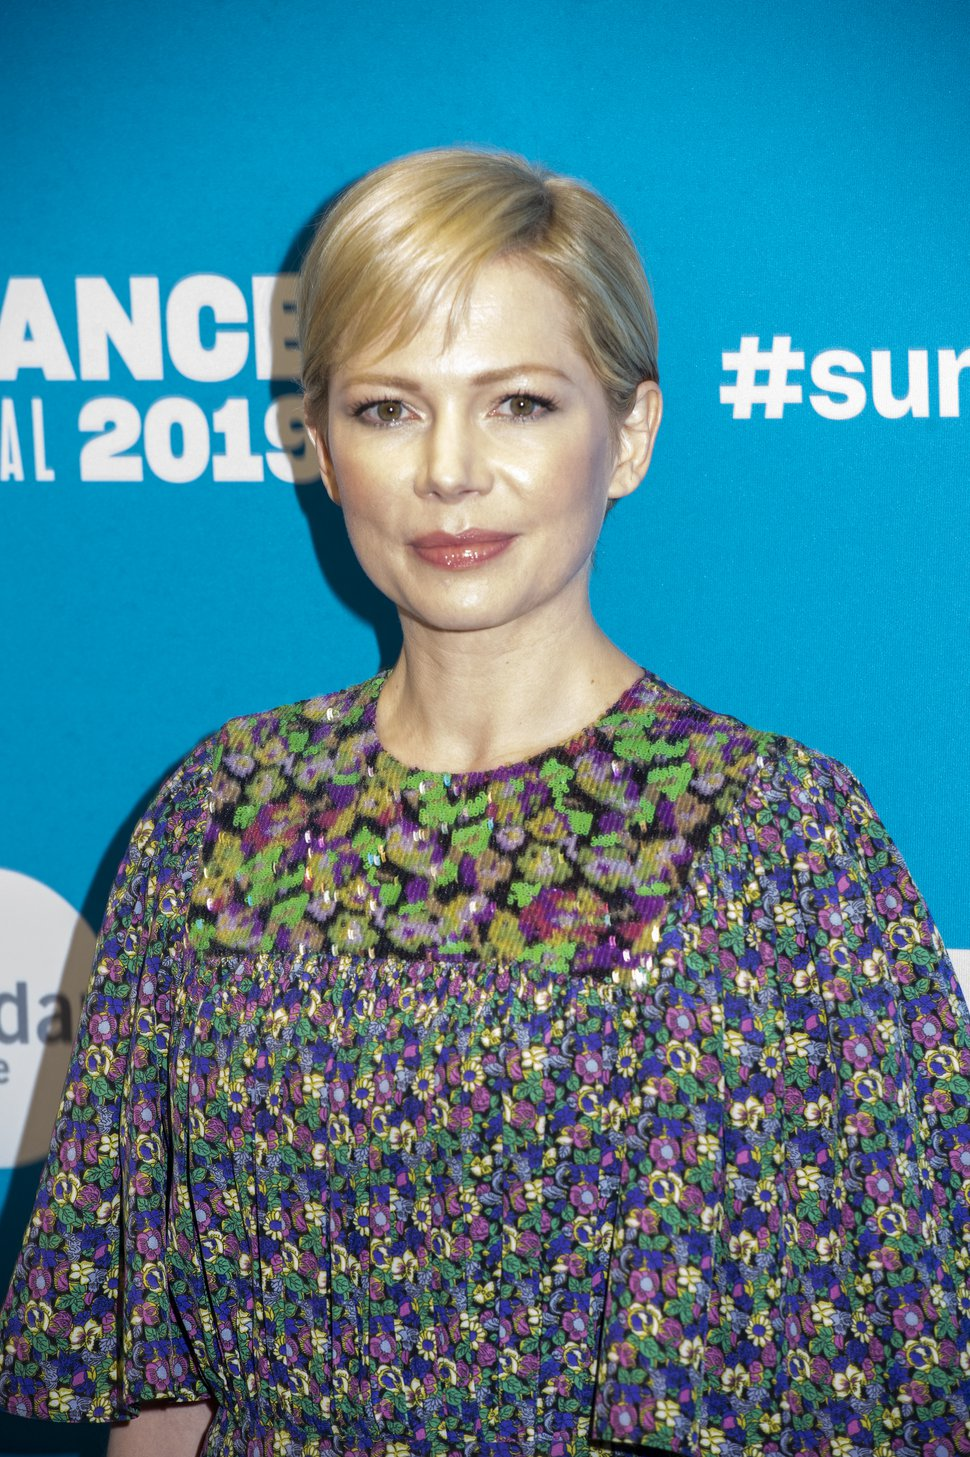 (Rick Egan | The Salt Lake Tribune) Michelle Williams on the red carpet for the premiere of the film